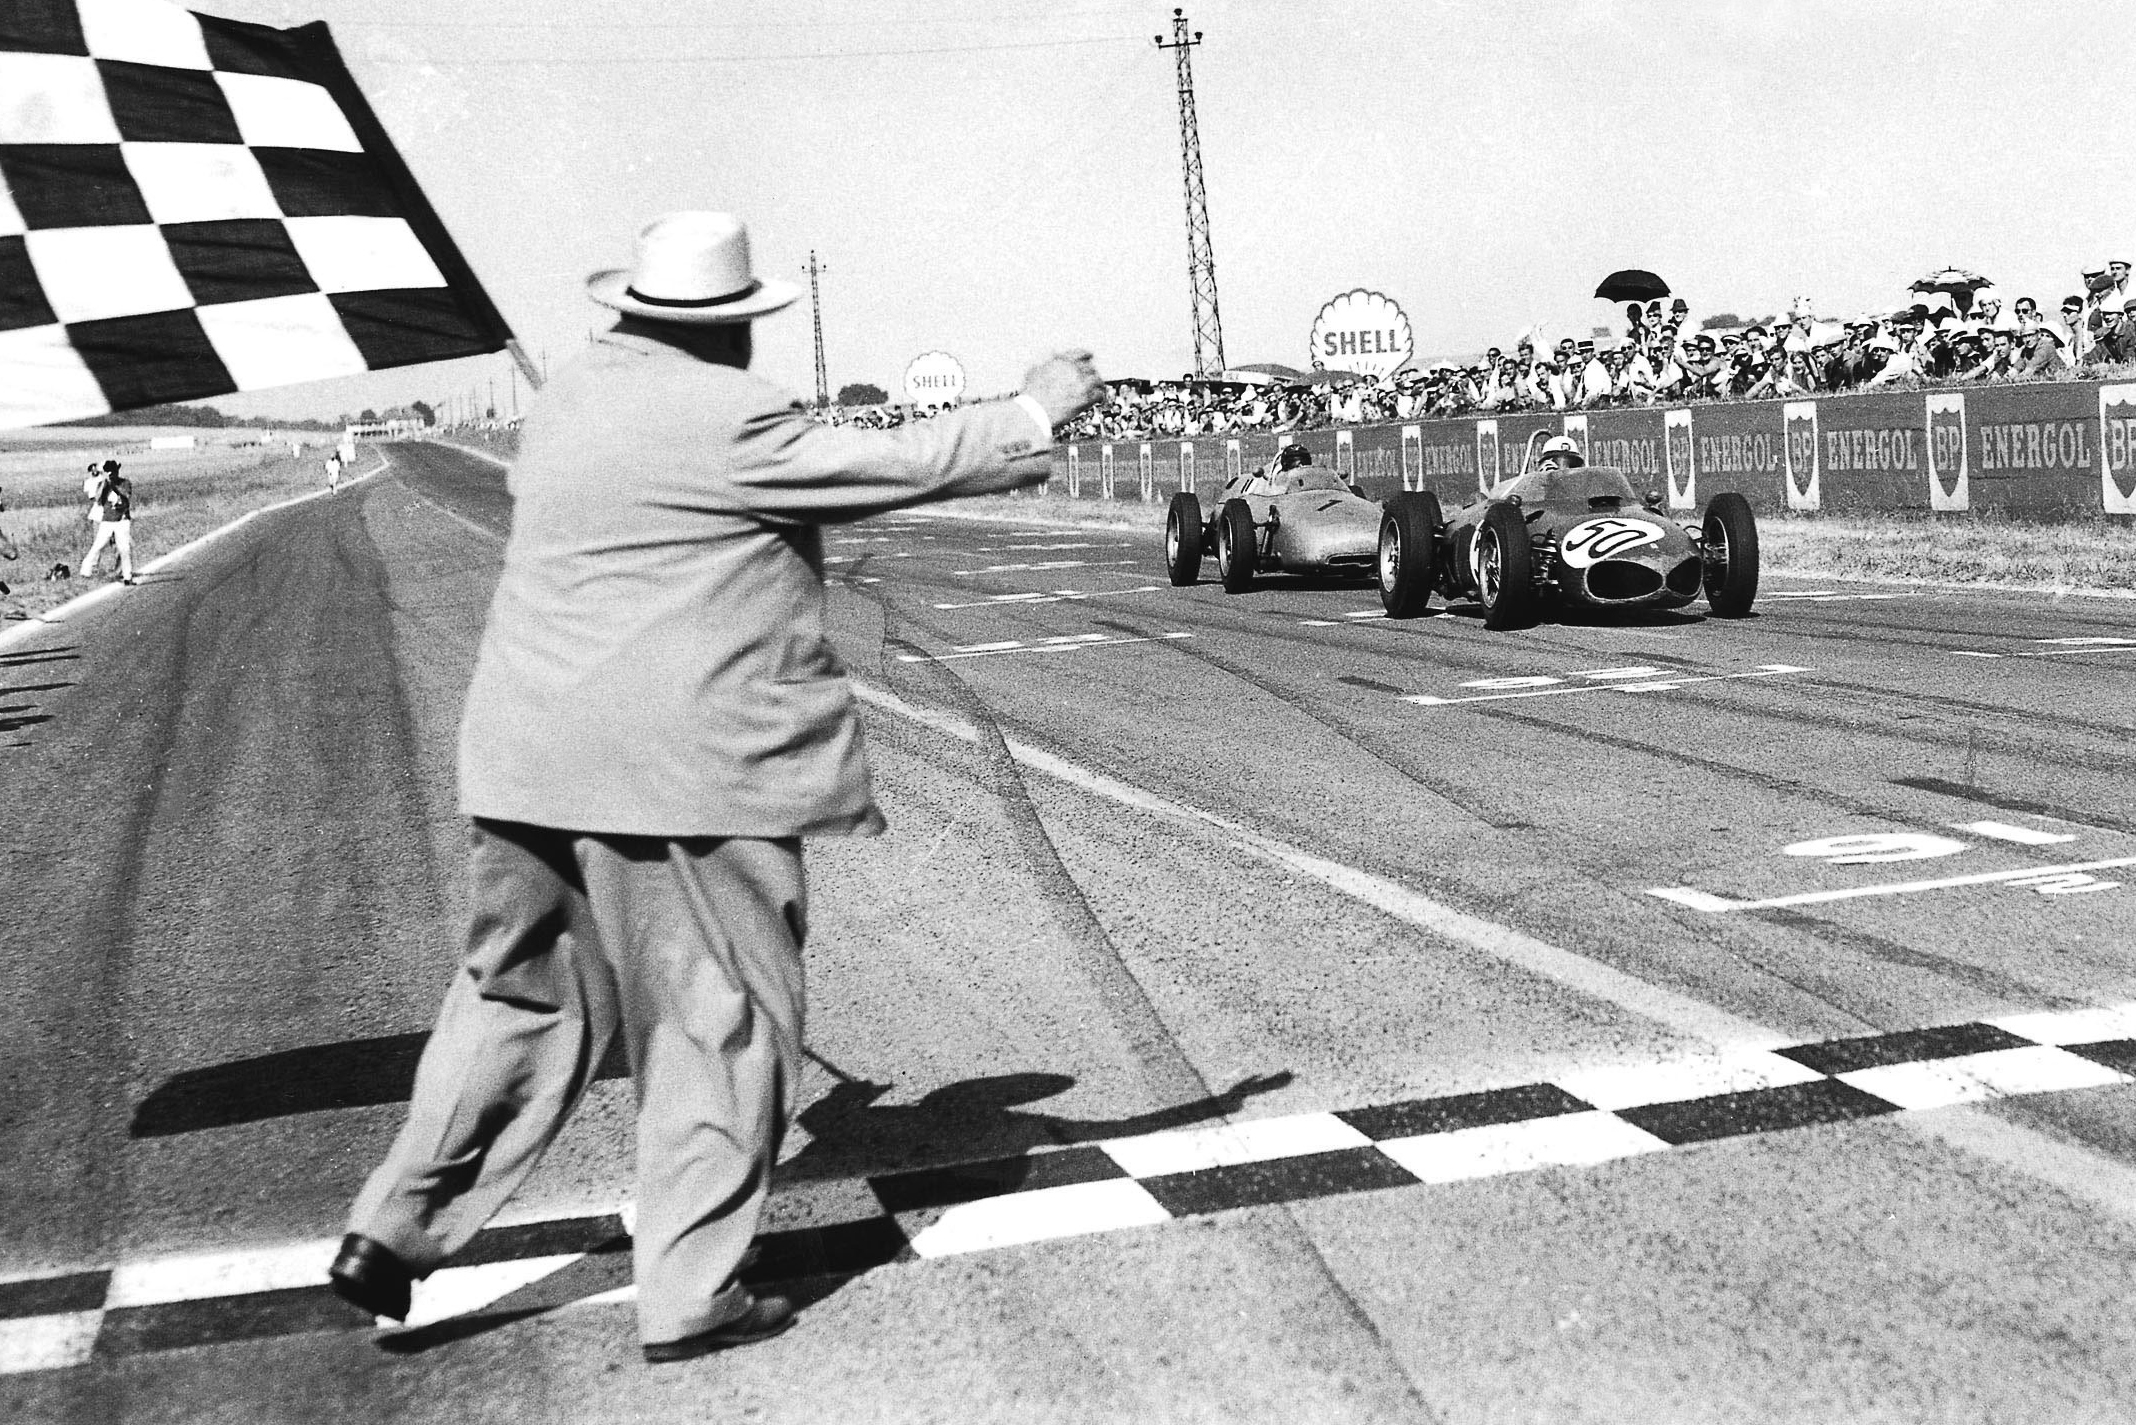 Giancarlo Baghetti in his Ferrari 156 closely followed by Dan Gurney driving a Porsche 718, takes the chequered flag for 1st position and his maiden win on his Grand Prix debut.